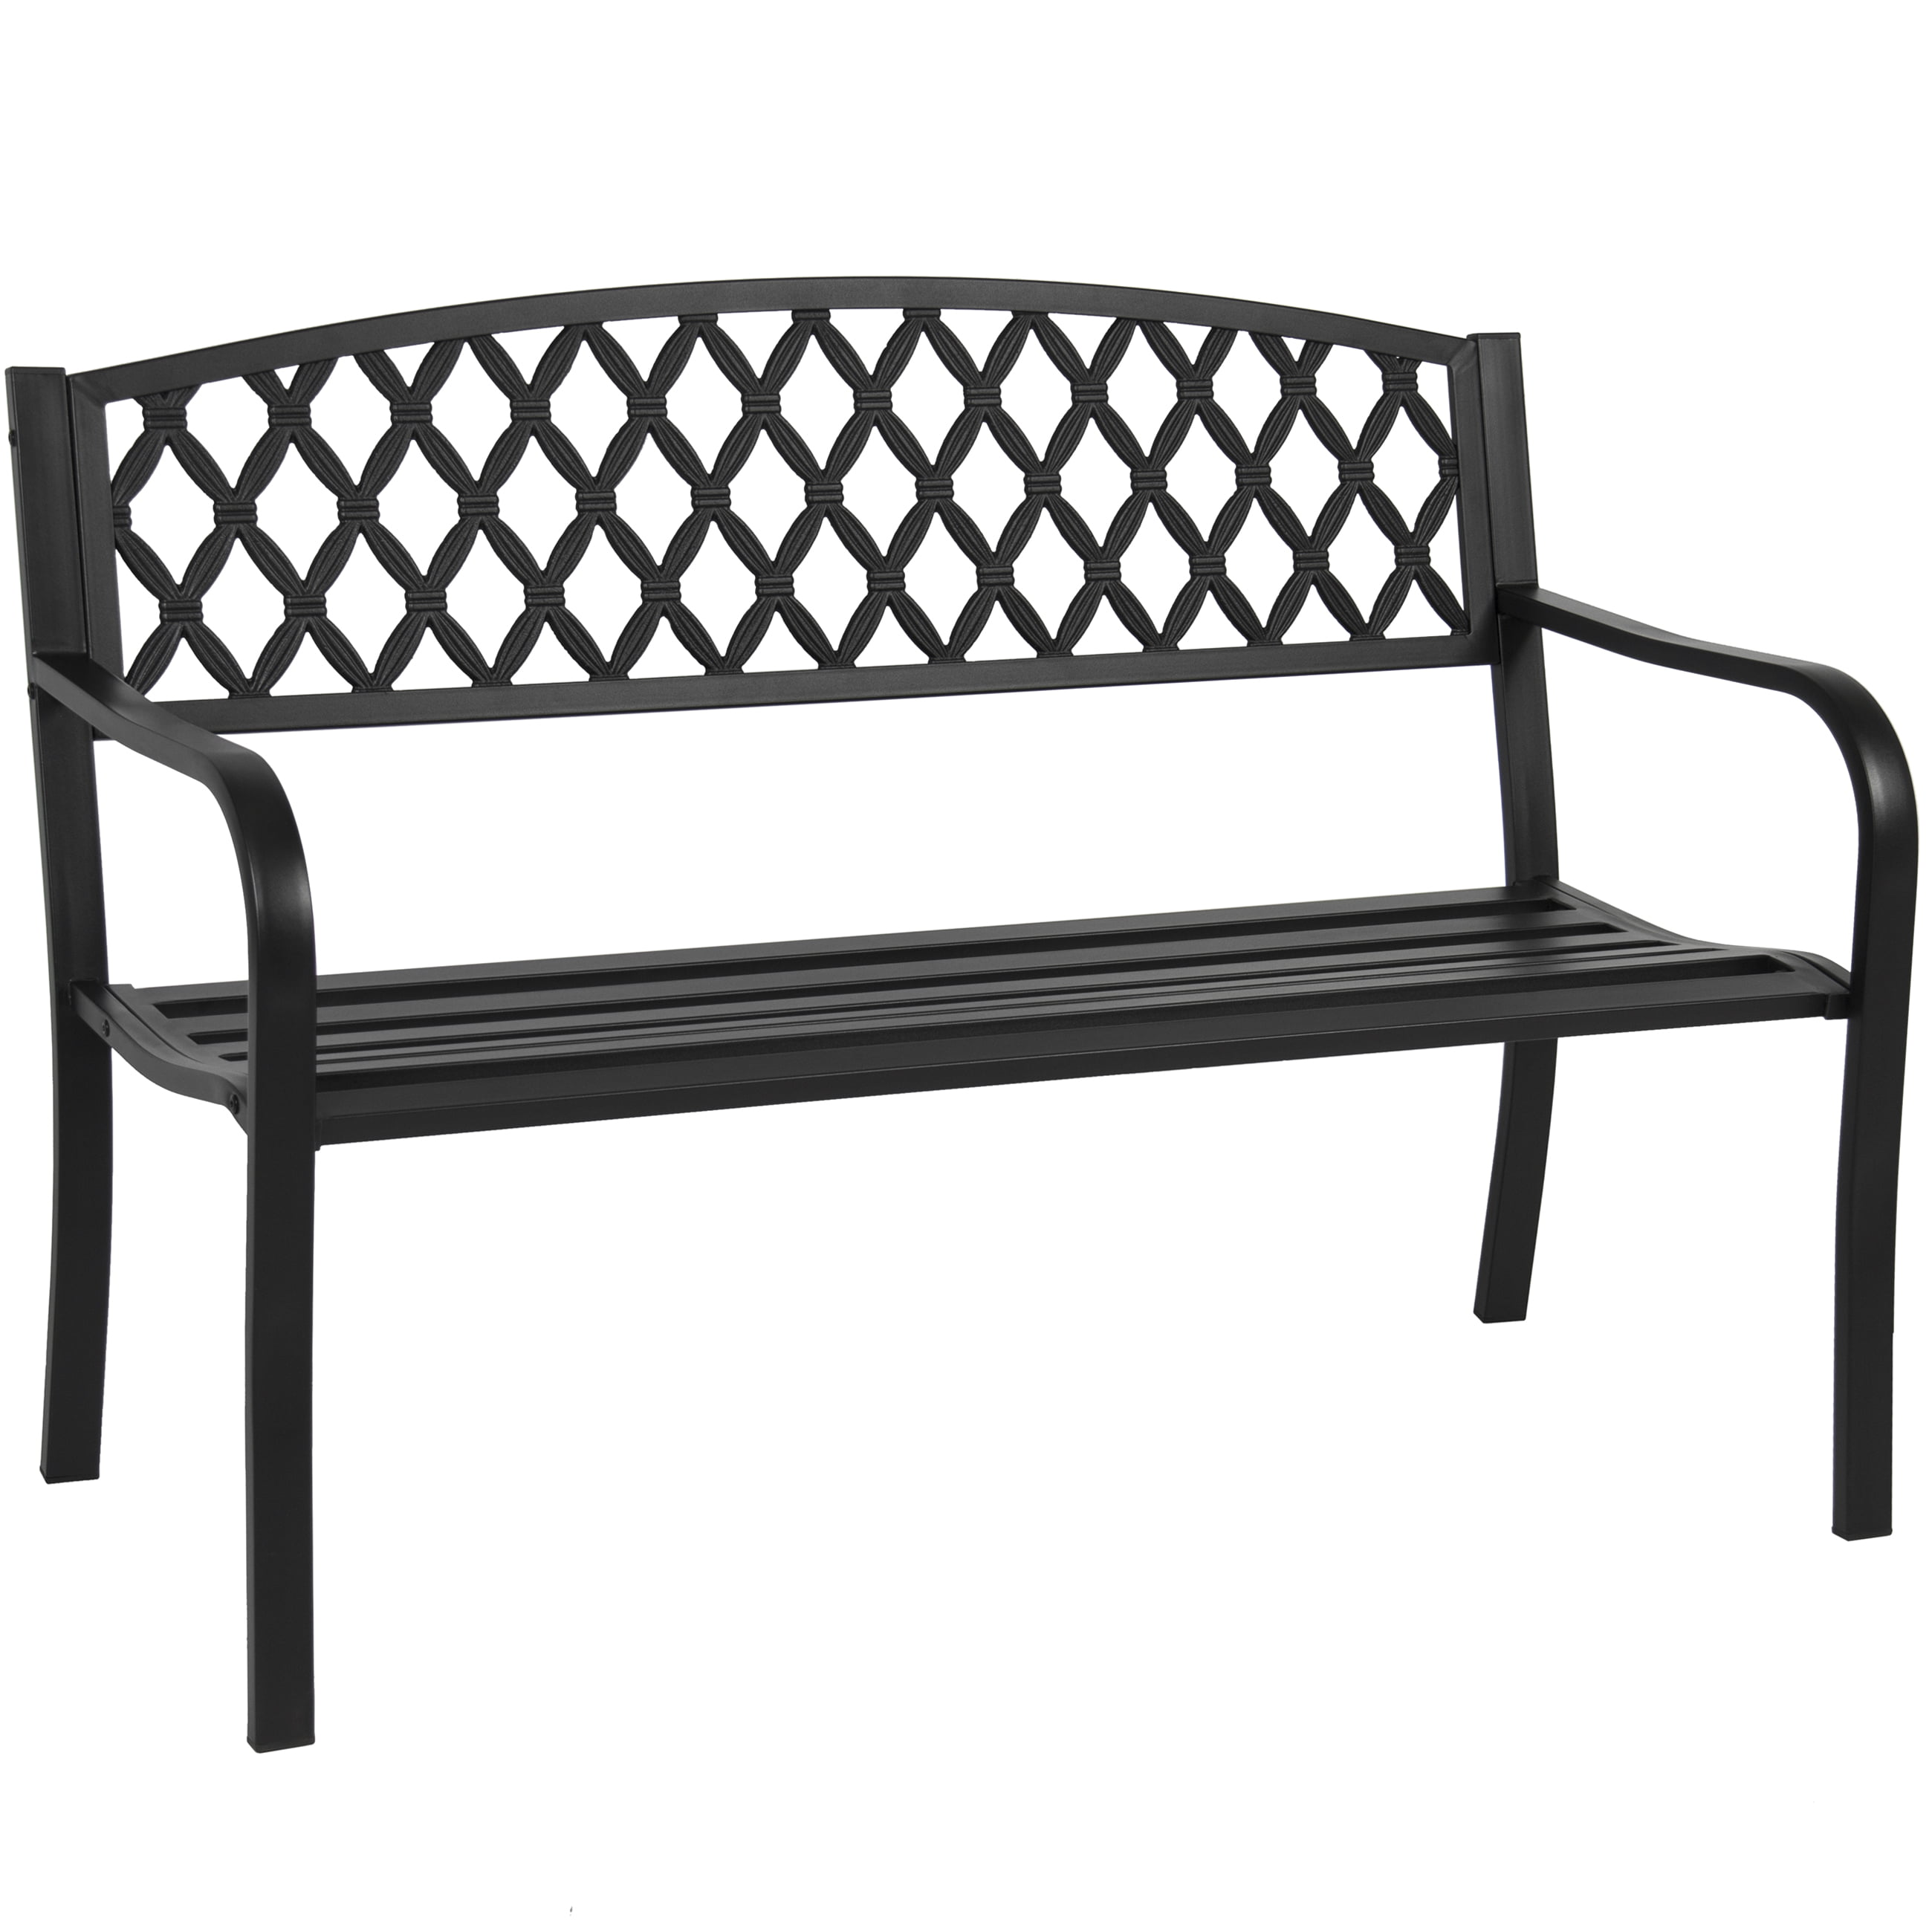 Mainstays Slat Outdoor Garden Bench Black Walmart Com